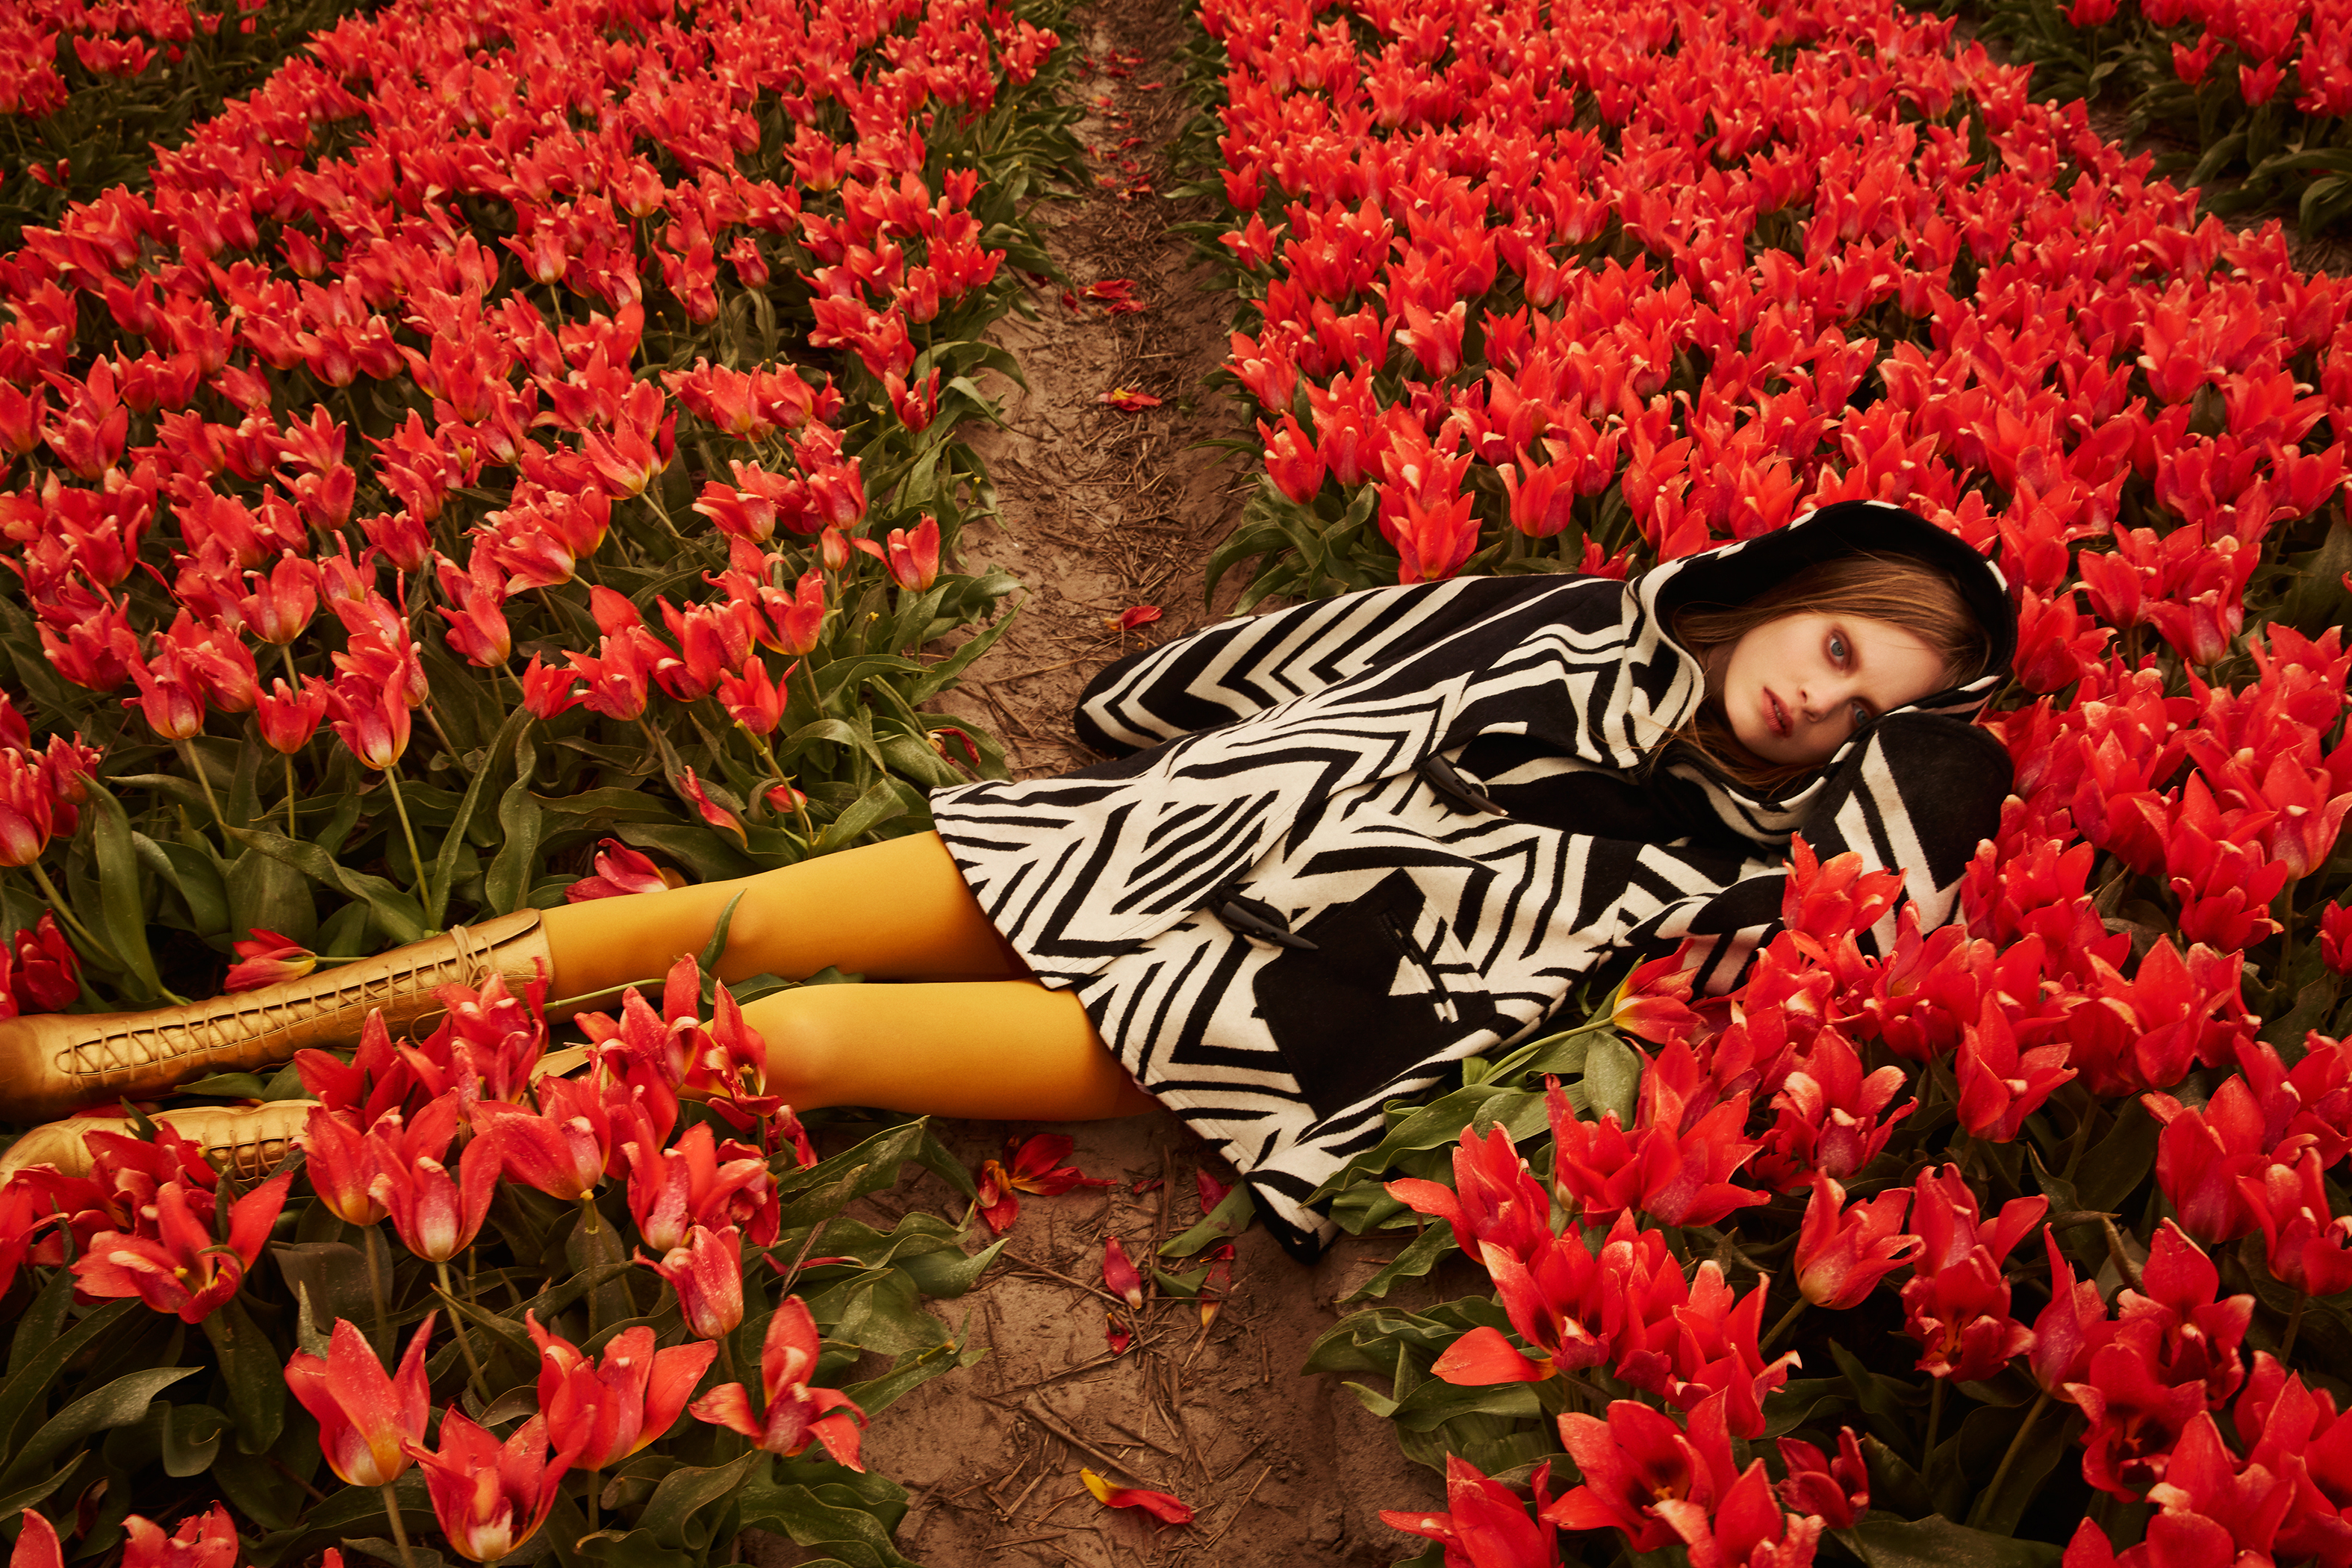 A model wearing a black and white white cape reclines in a field of red tulips.